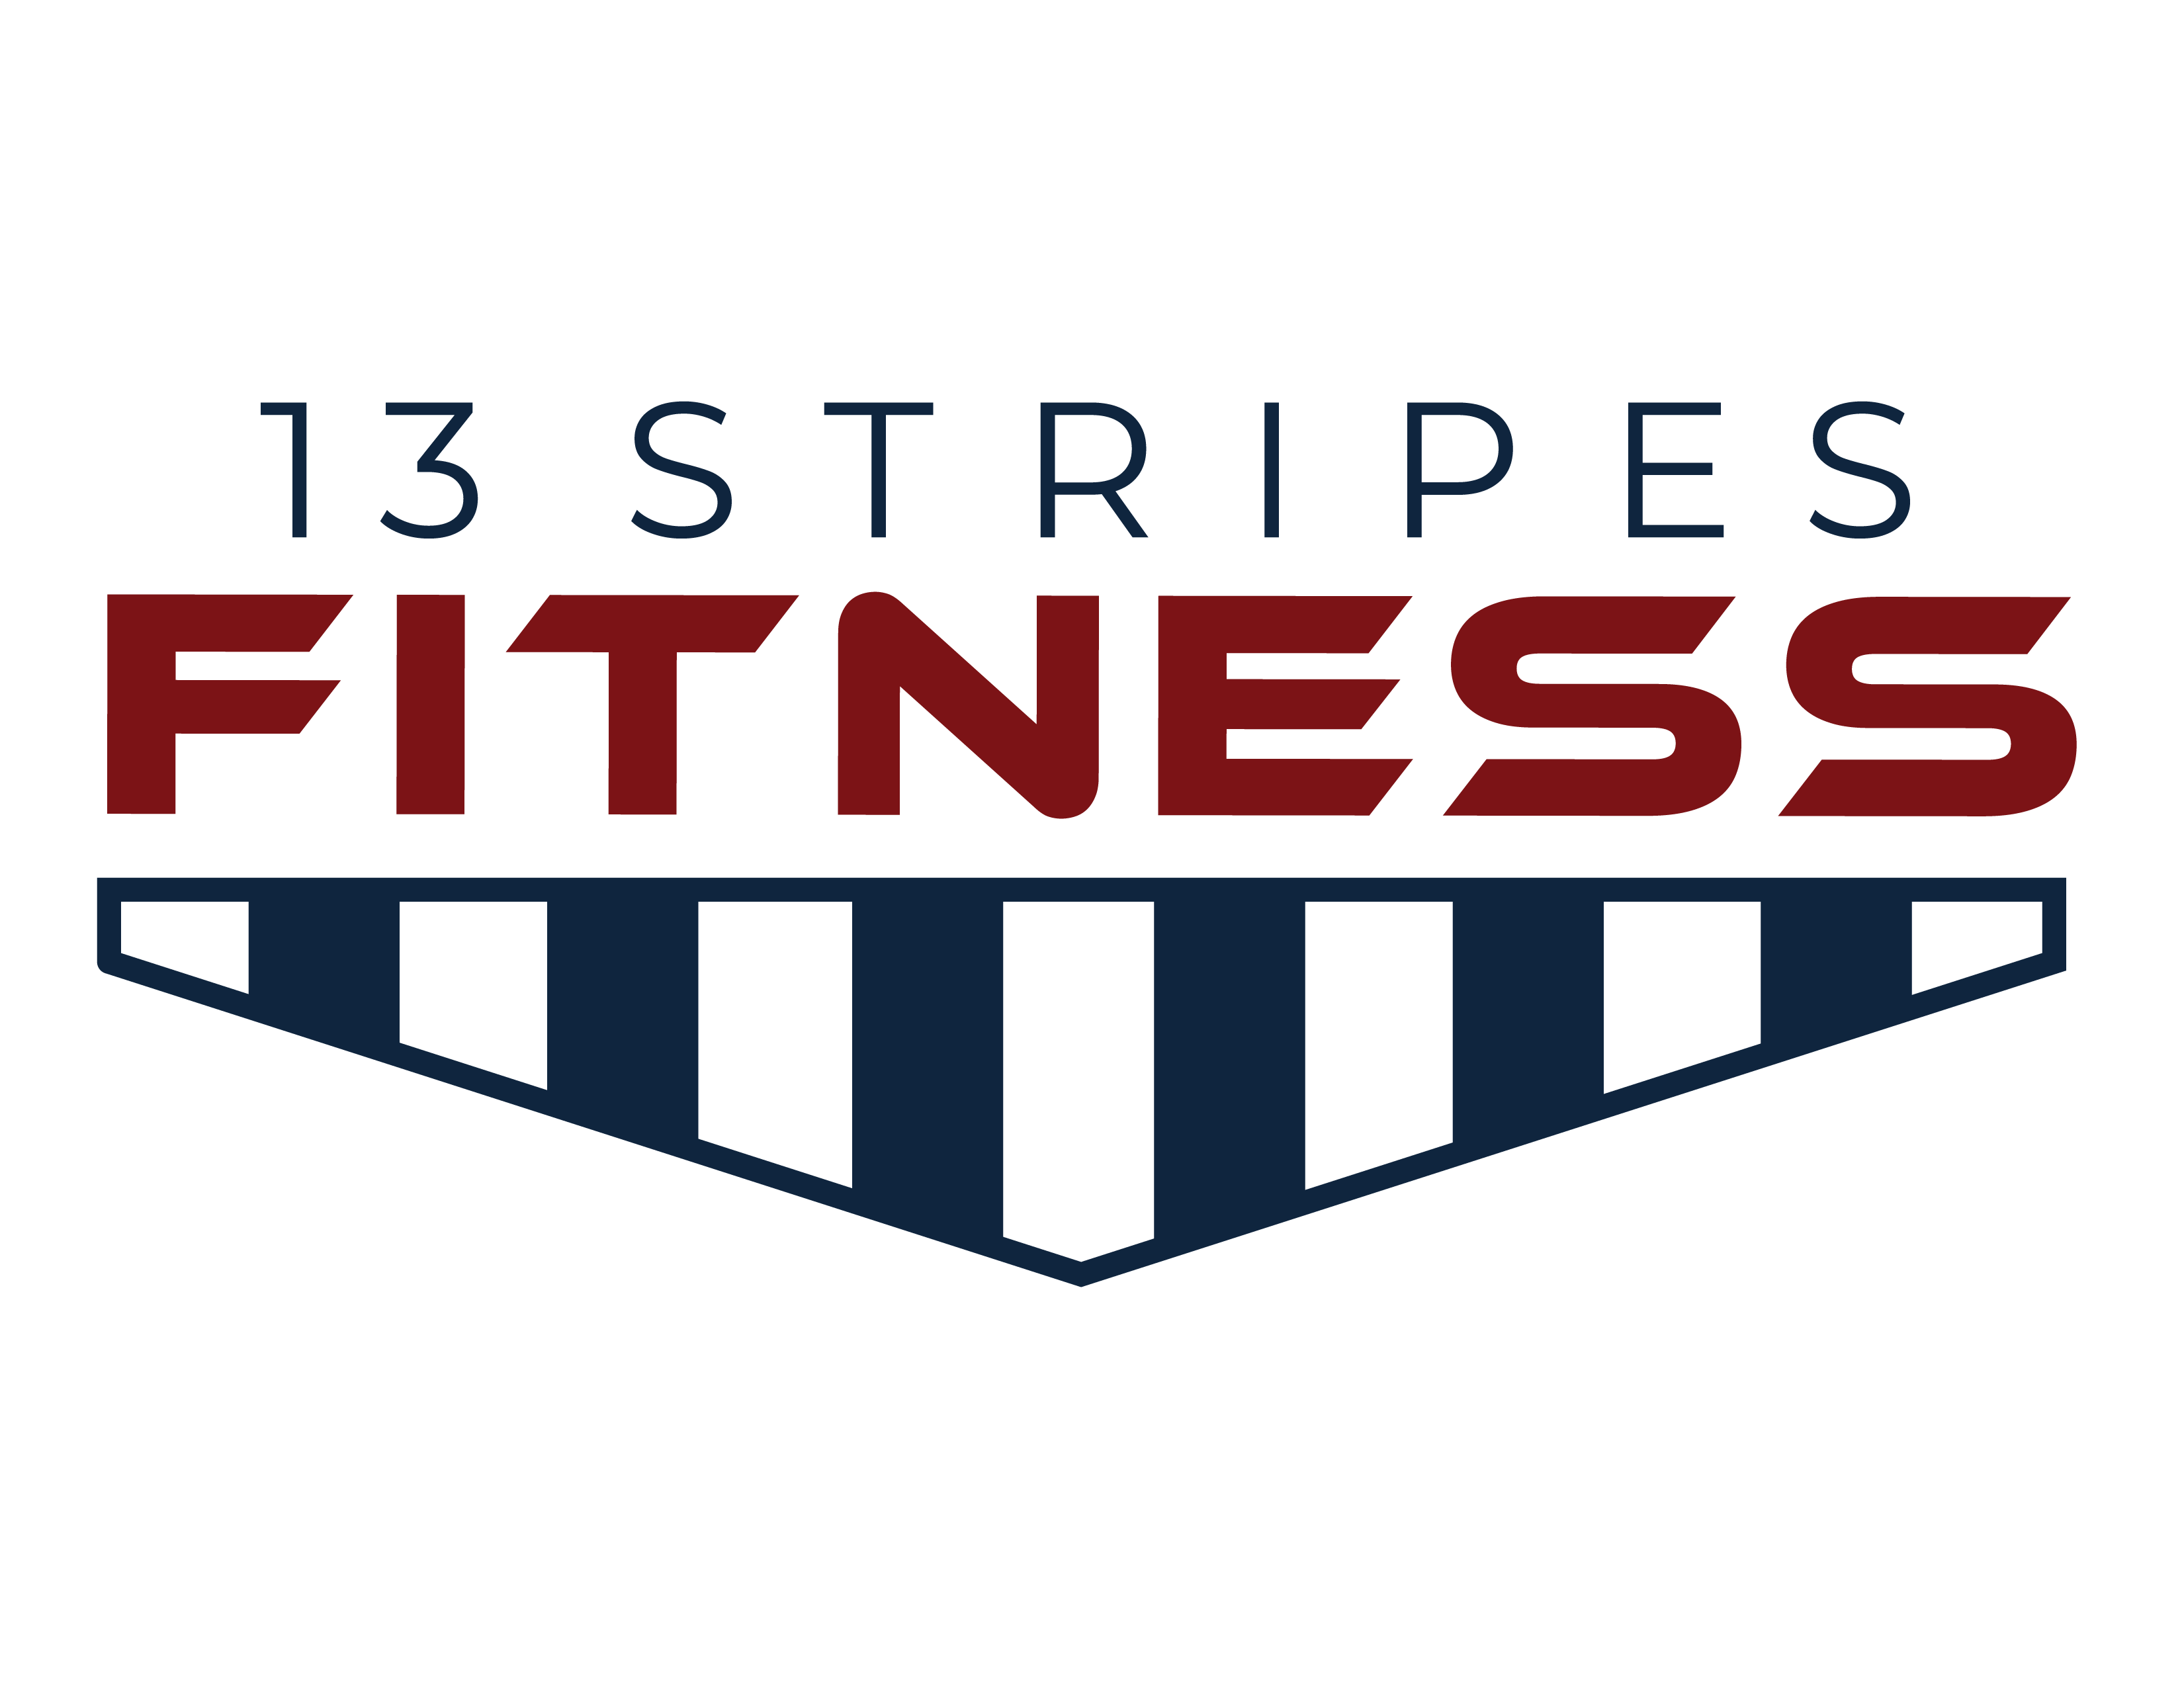 13 Stripes Fitness logo